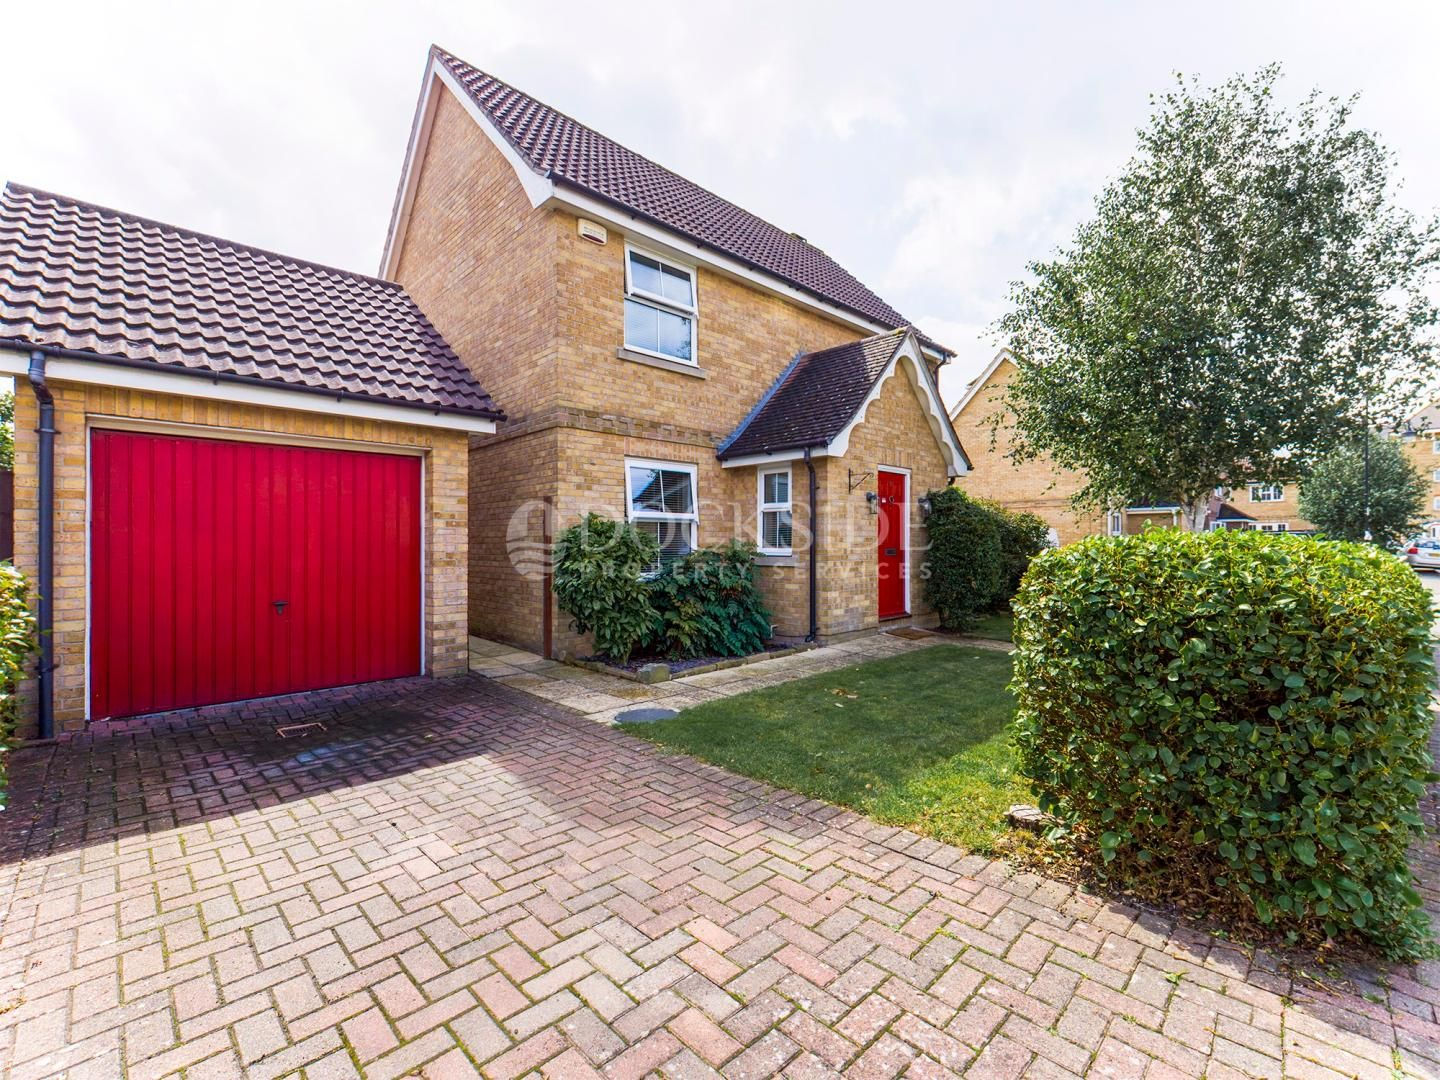 3 bed house for sale in Haven Way - Property Image 1